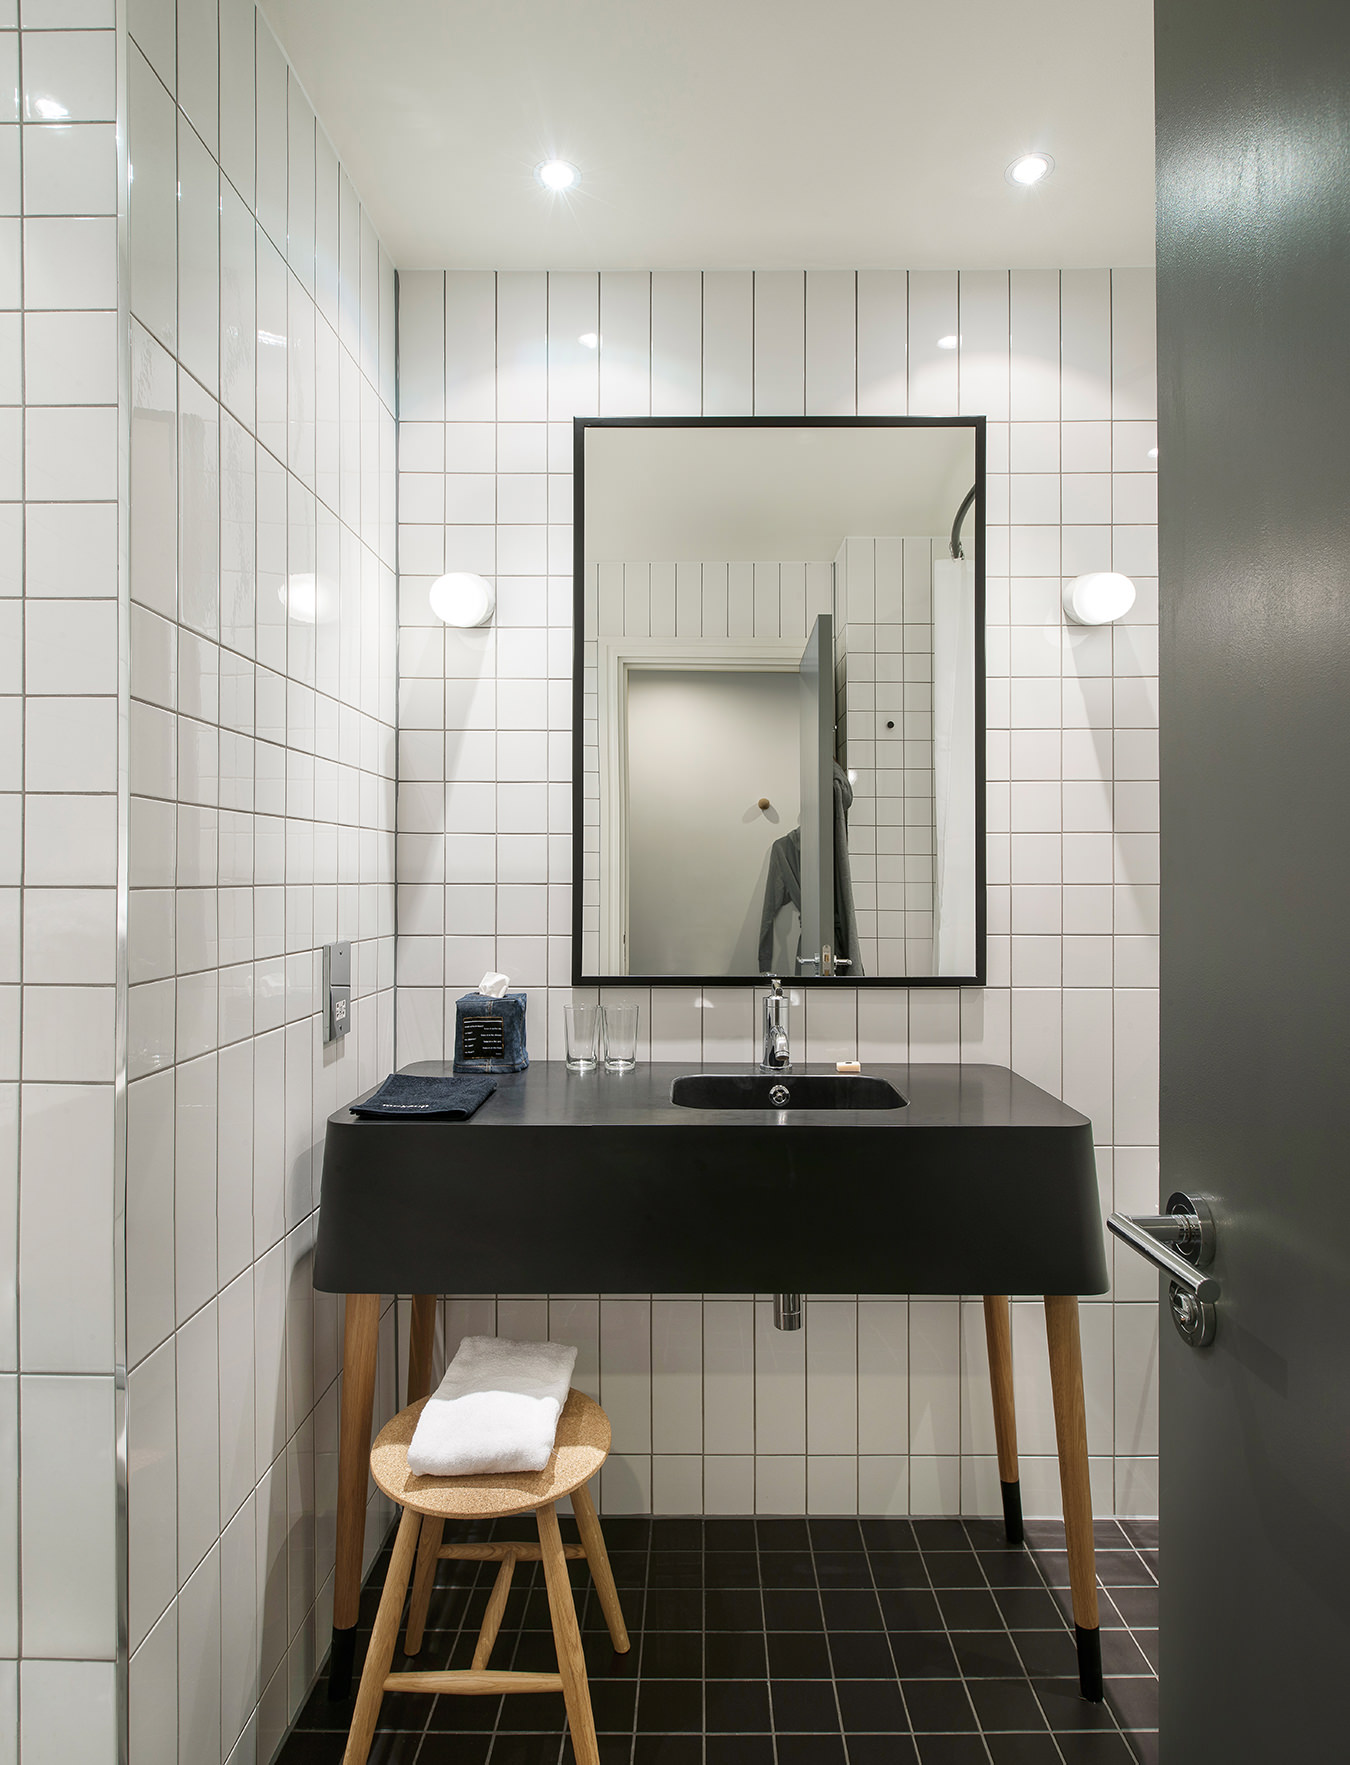 Ace Hotel Shoreditch: The Ace Hotel Empire